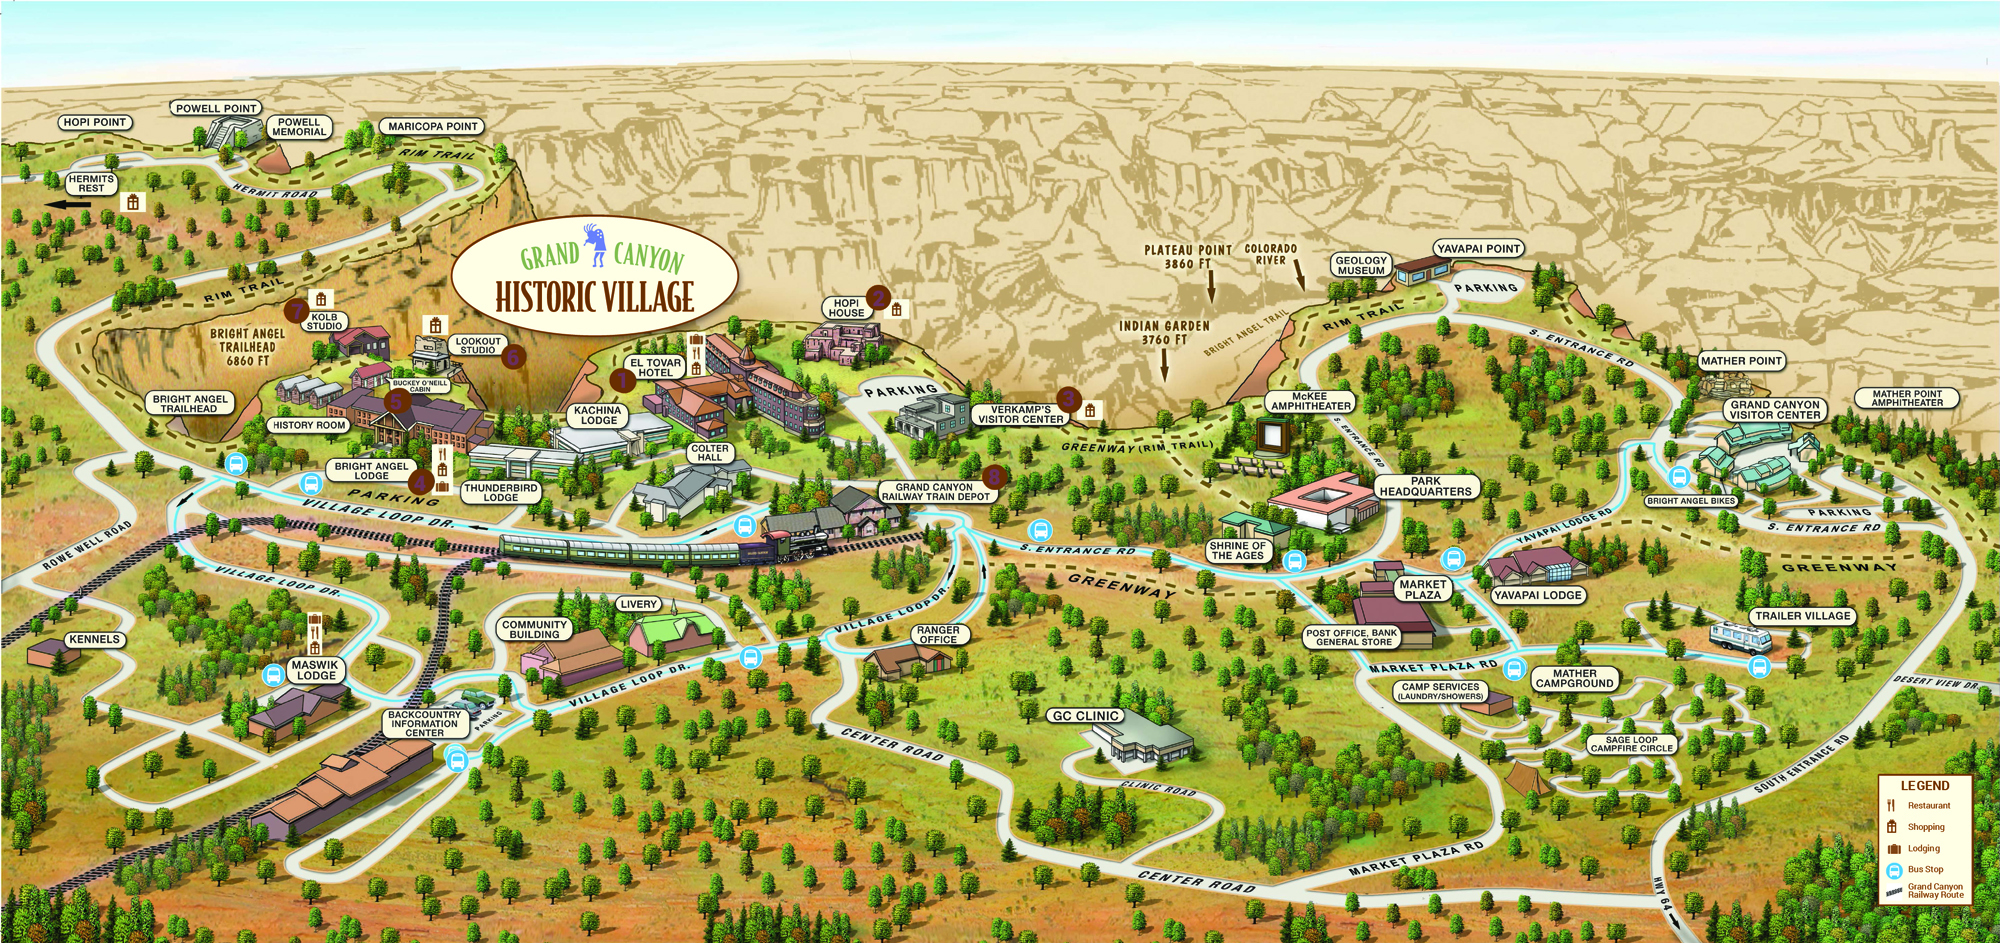 grand canyon sightseeing map Lookout Studio Usa 2019 grand canyon sightseeing map